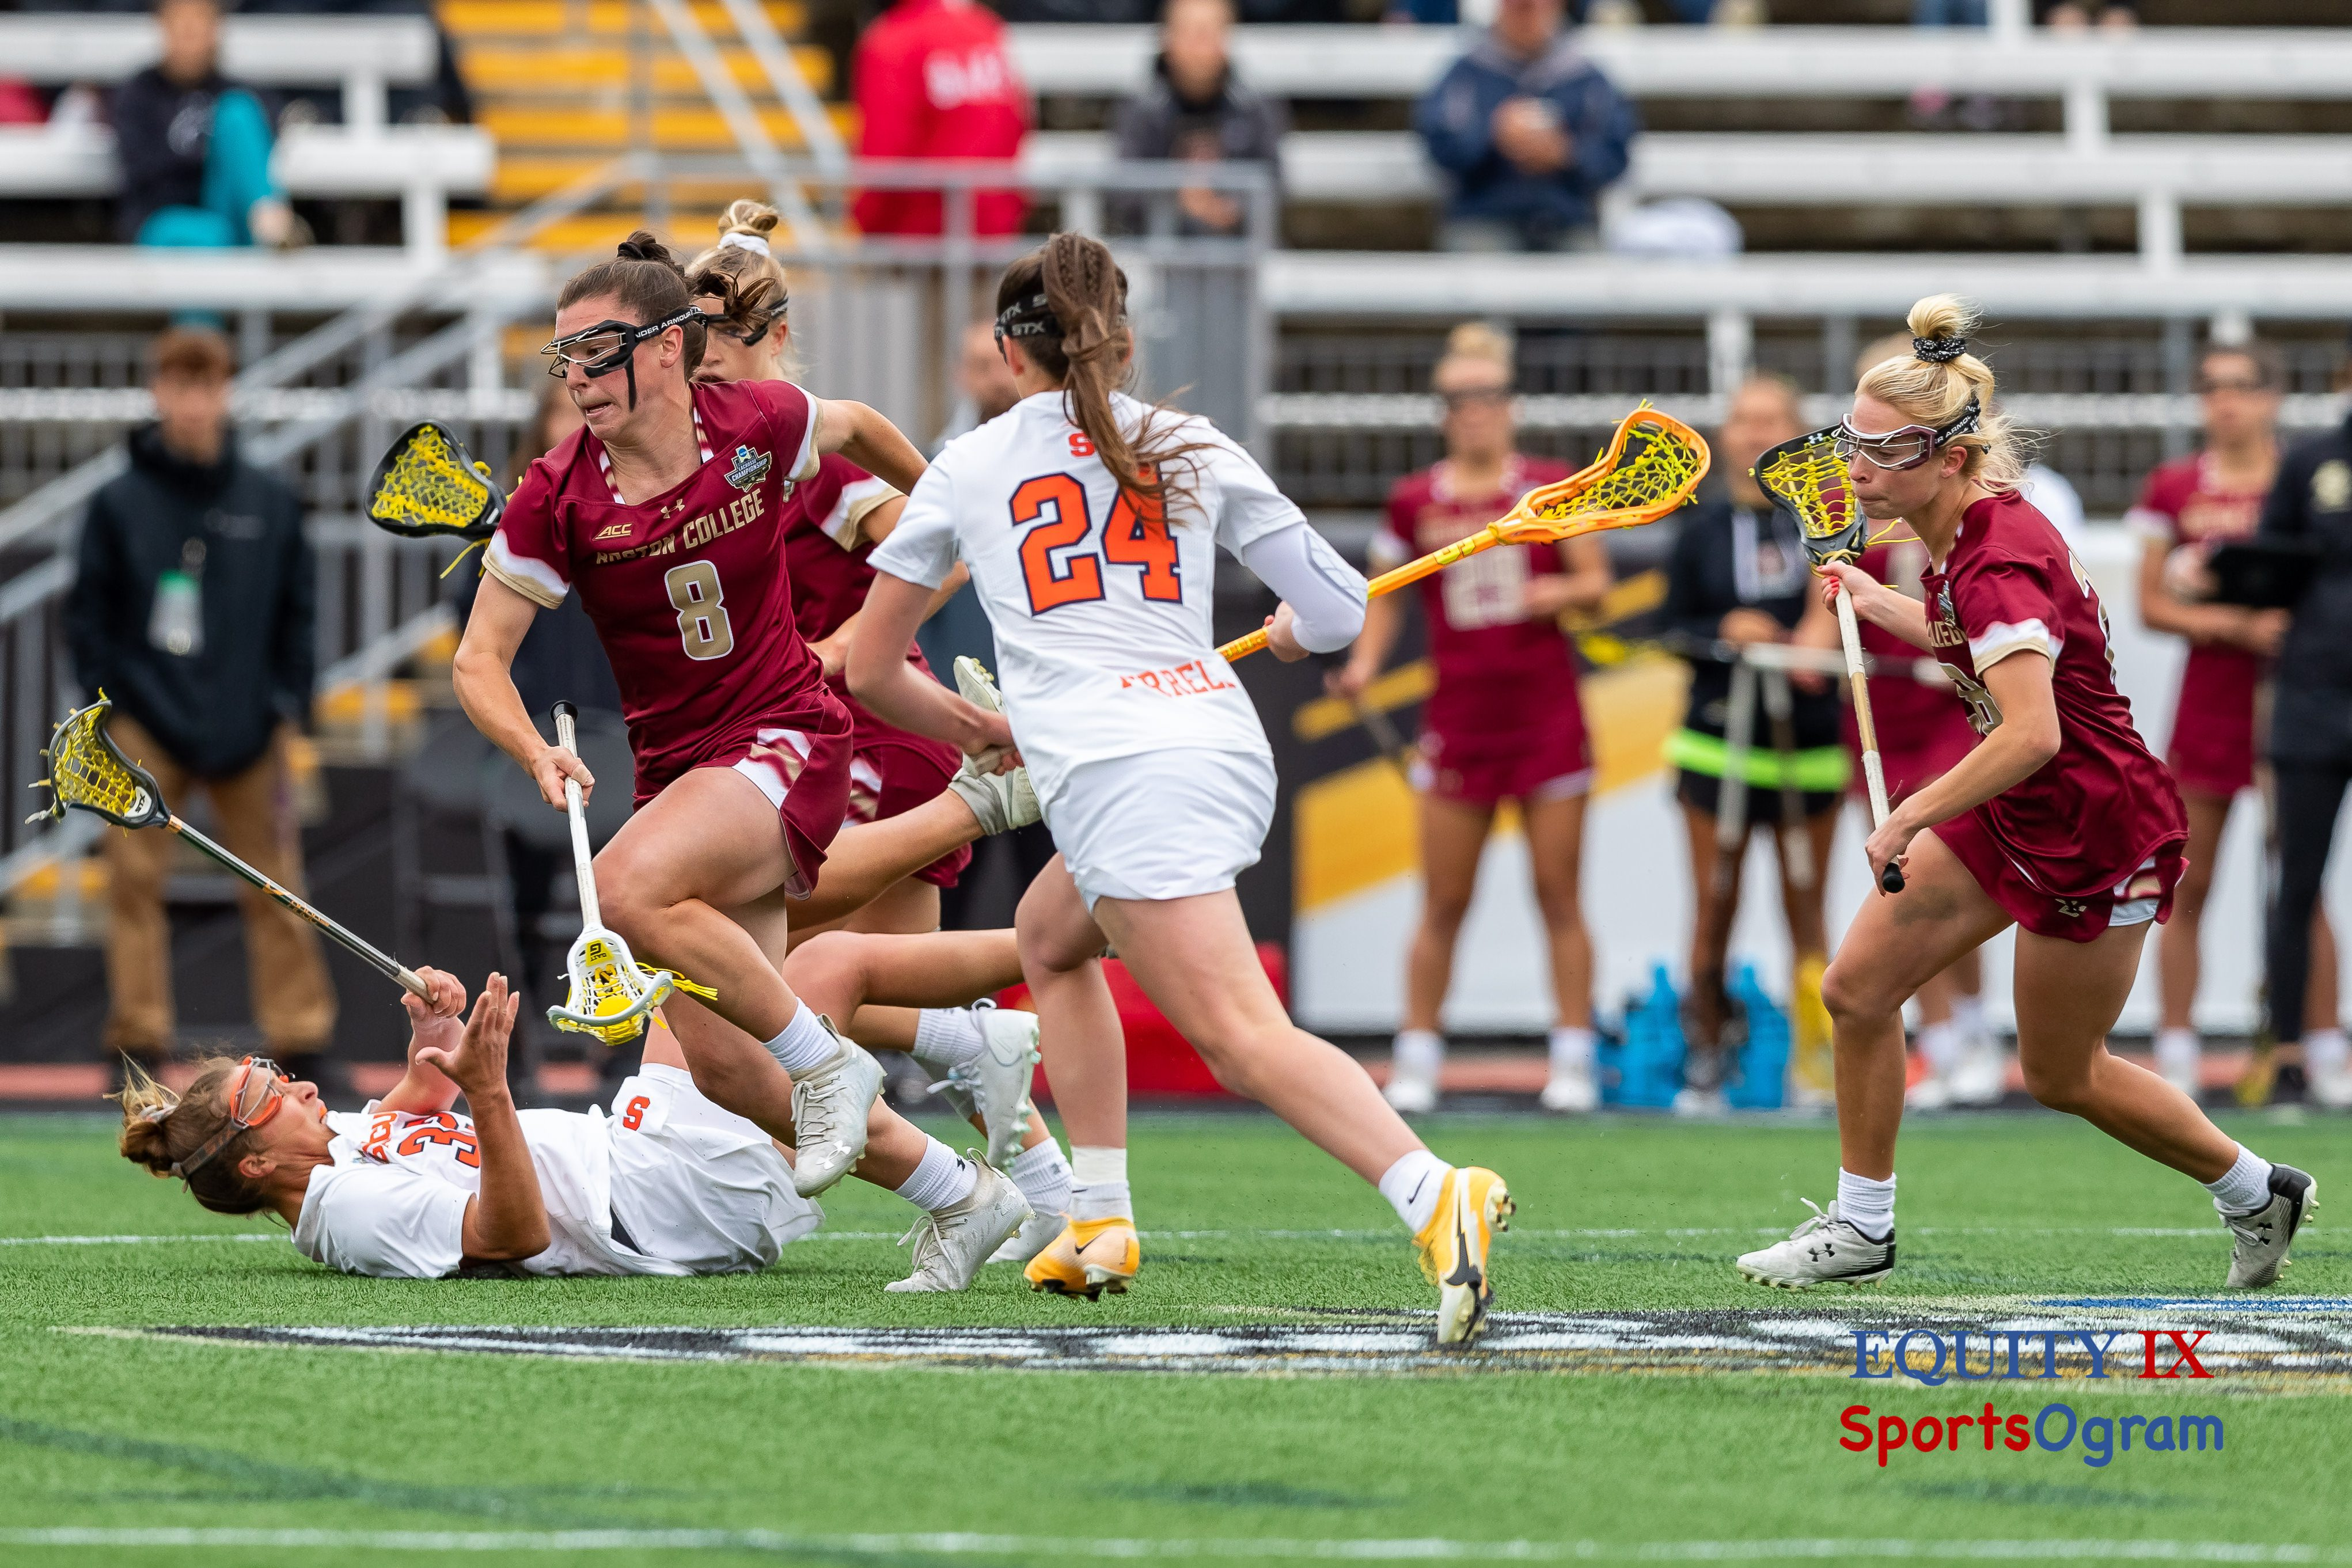 #8 Charlotte North (Boston College) runs through the midfield with yellow lacrosse ball in stick after winning the draw against Syracuse with one player on the ground and #24 chasing Charlotte - 2021 NCAA Women's Lacrosse Championship Game © Equity IX - SportsOgram - Leigh Ernst Friestedt